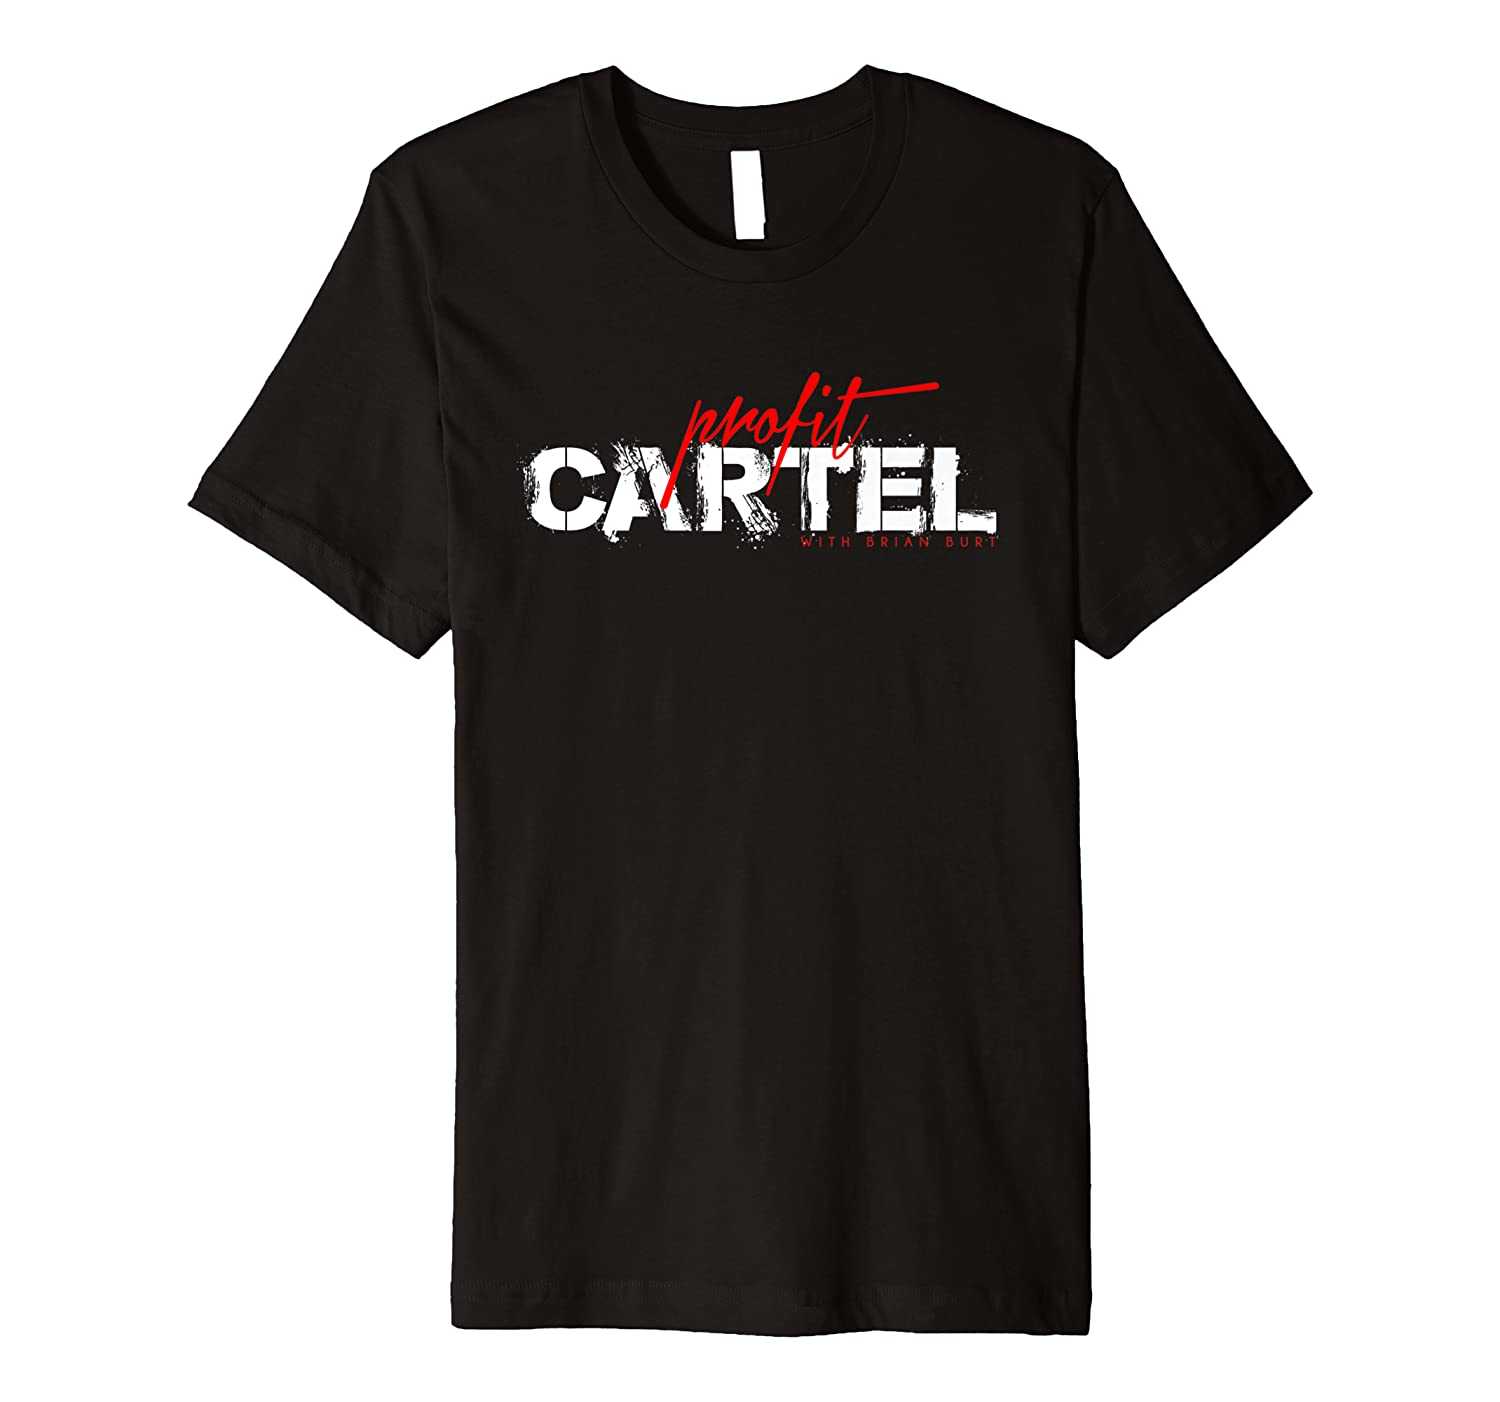 Amazon.com: Mens Profit Cartel with Brian Burt Tee Shirt ...